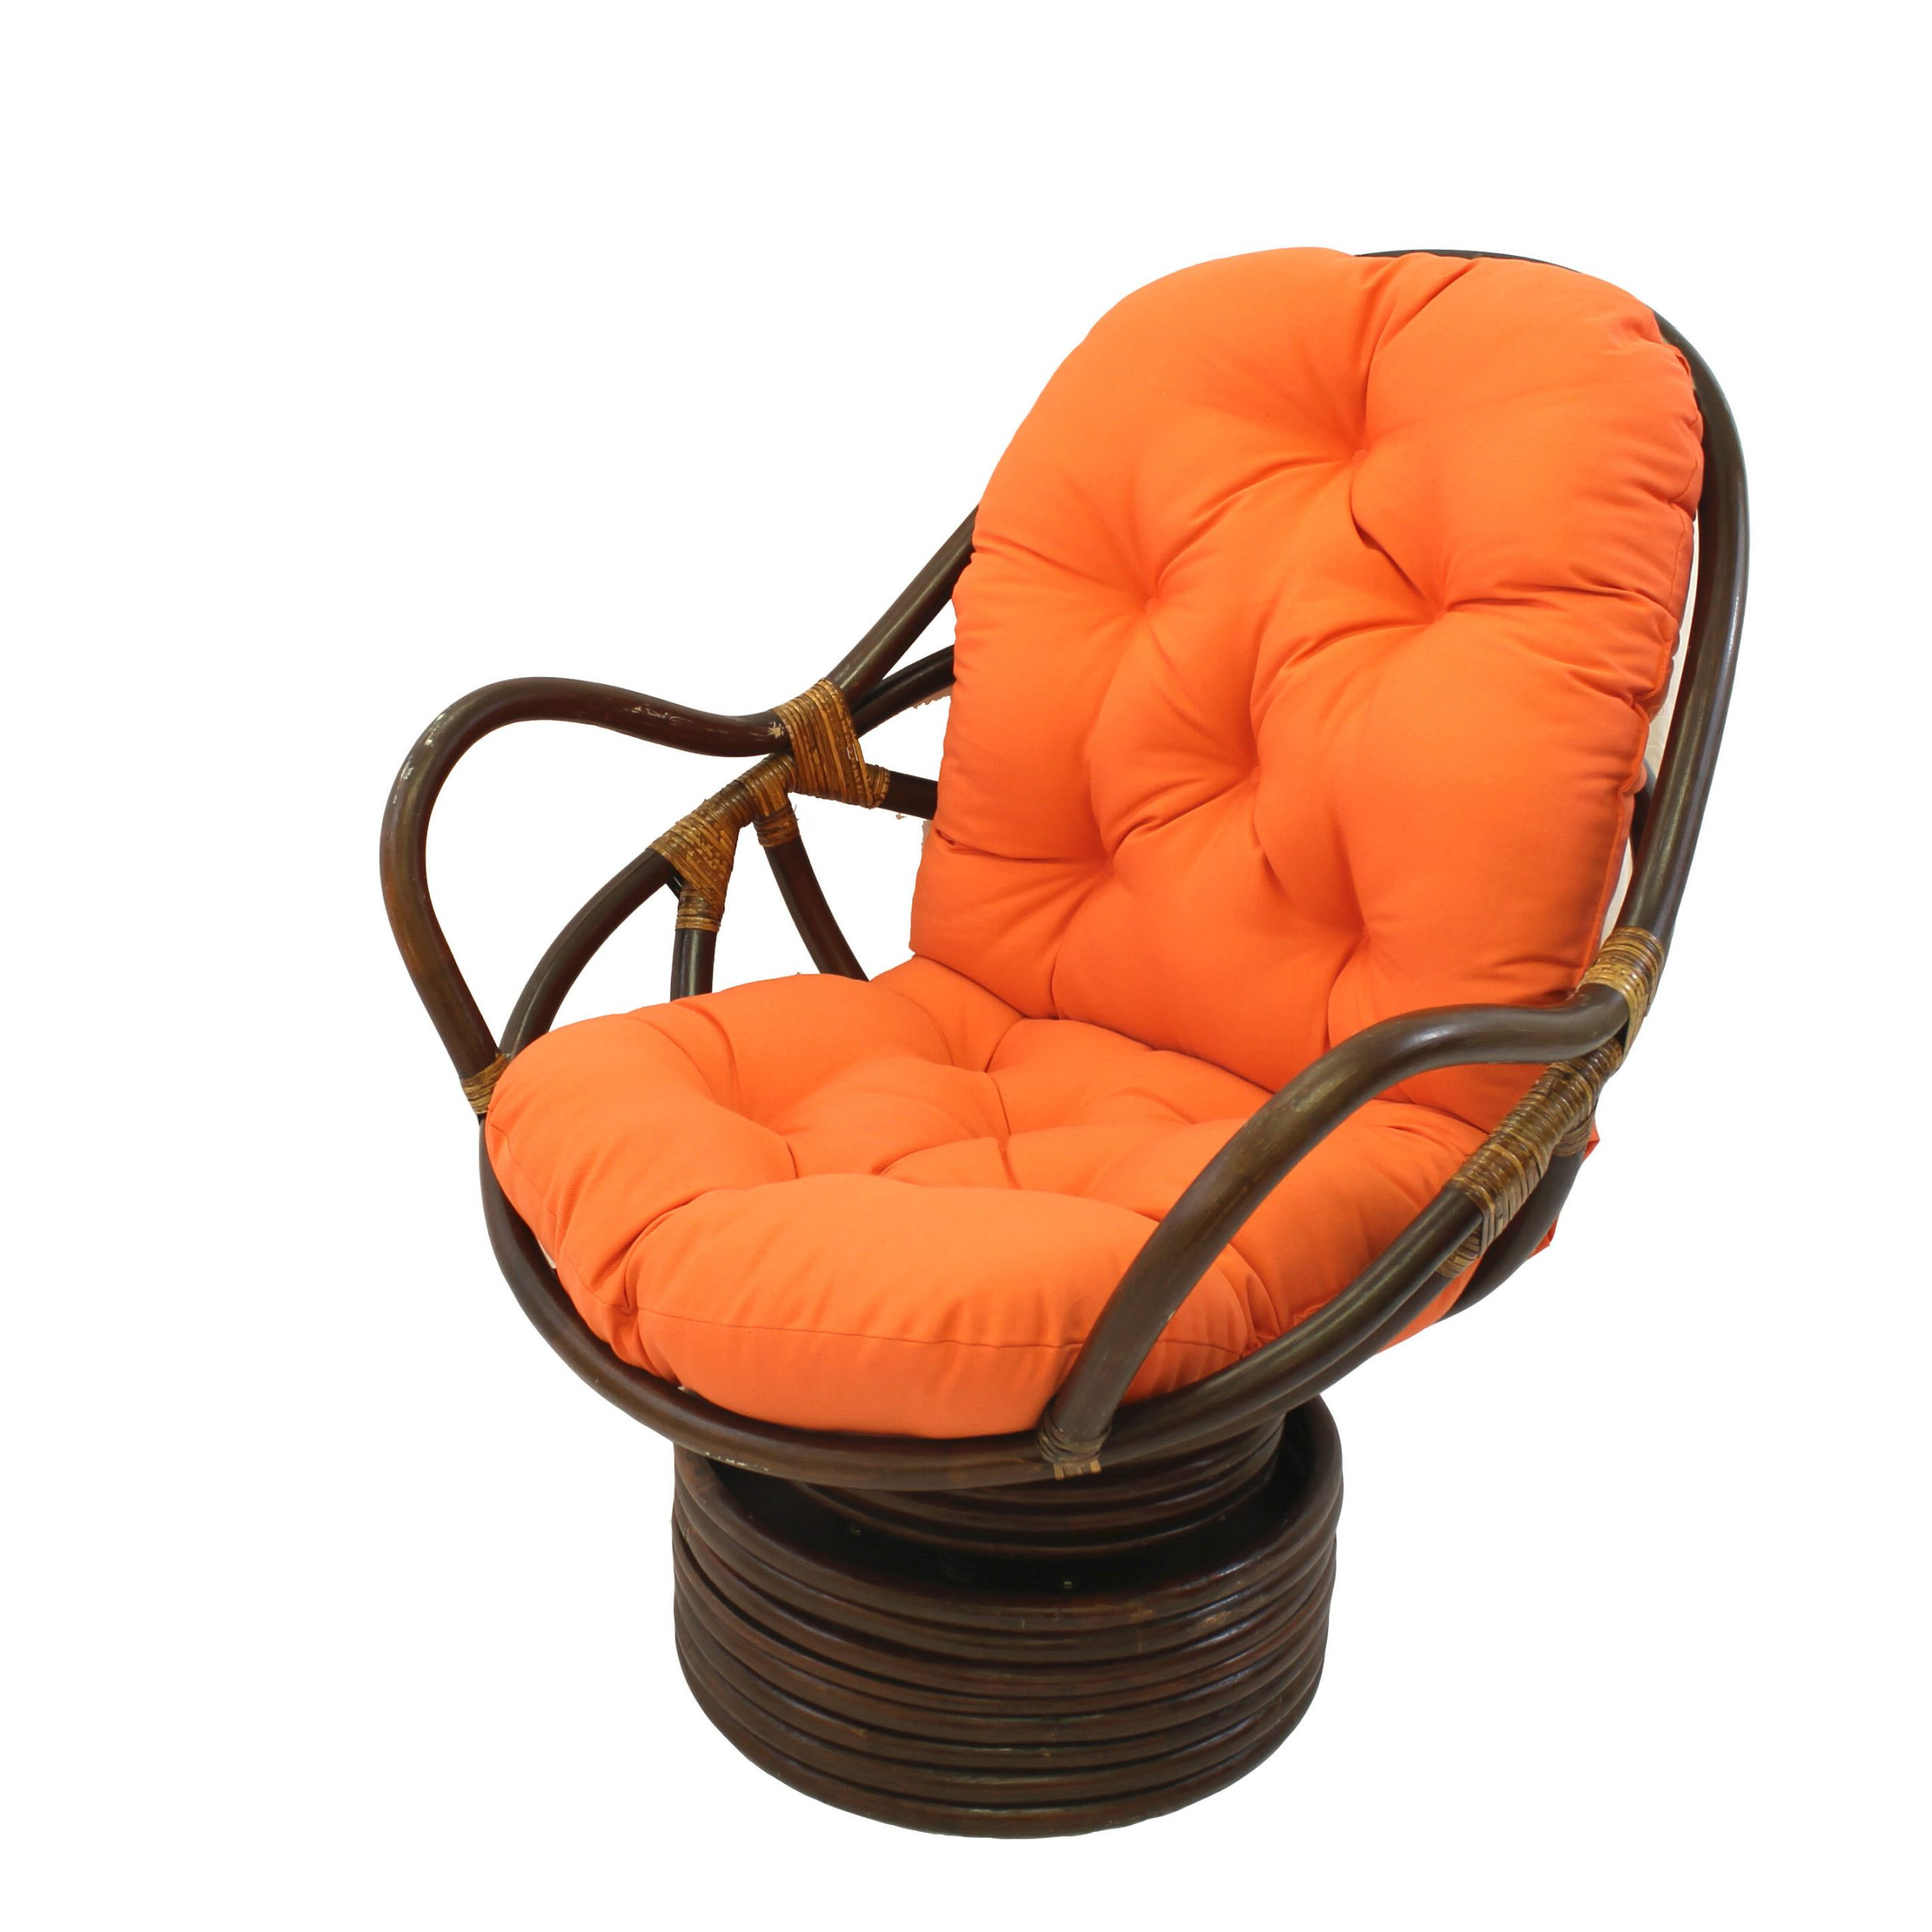 Wayfair Within Well Known Artressia Barrel Chairs (View 7 of 20)